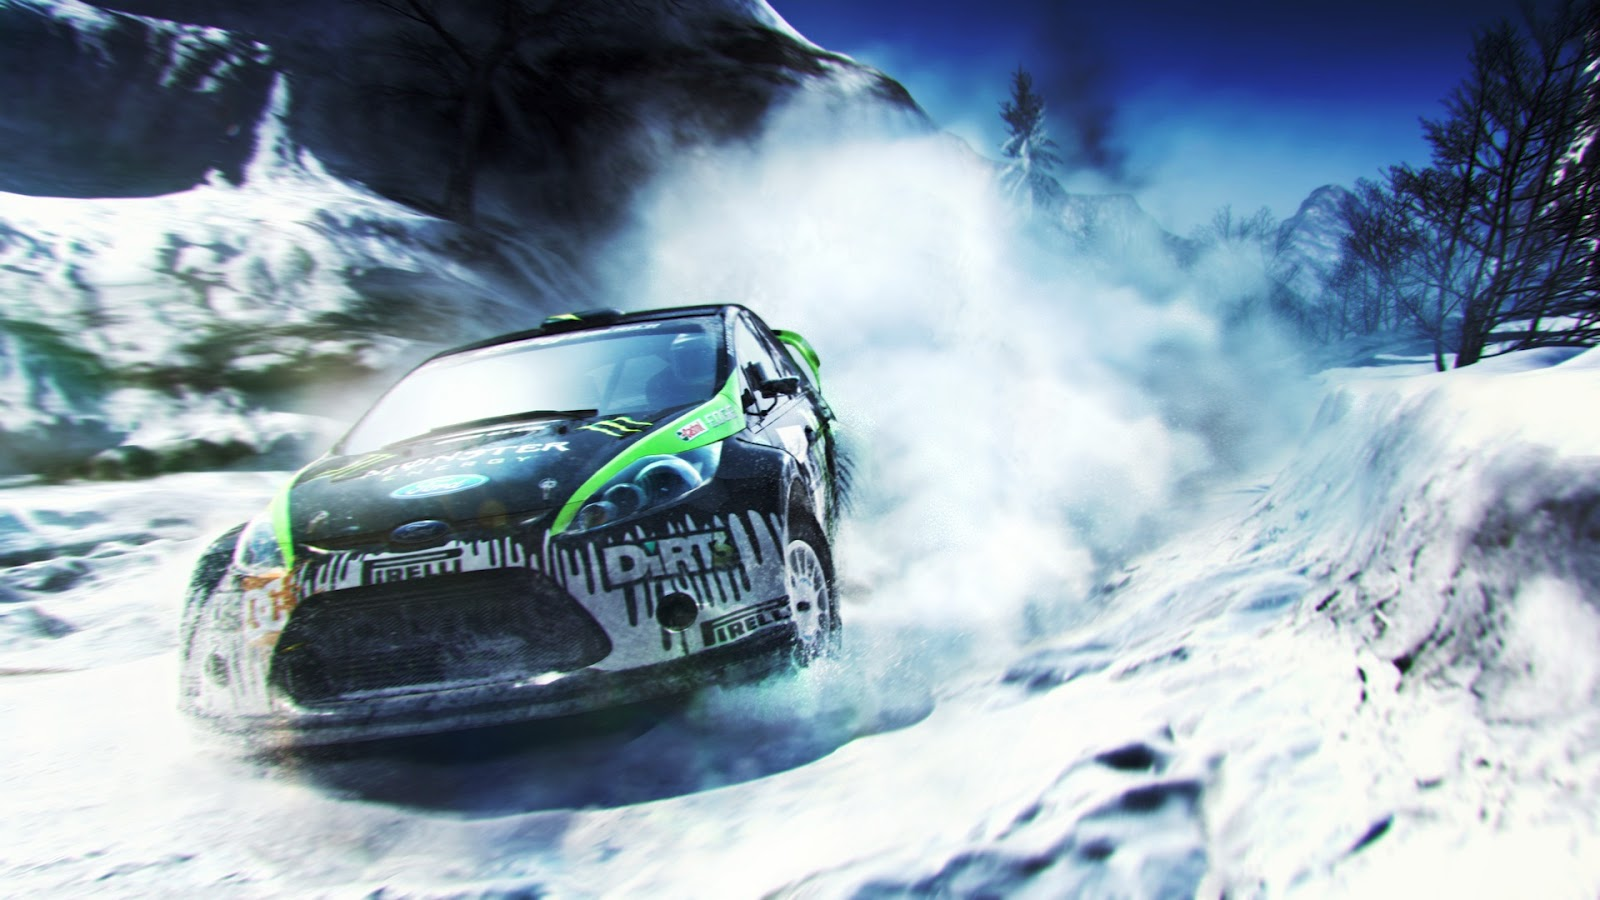 http://1.bp.blogspot.com/-Bg9DlmkODIM/UAPc9yTjYII/AAAAAAAAAqU/eUGmK_U05oA/s1600/hd+wallpapers+of+games+cars-4.jpg